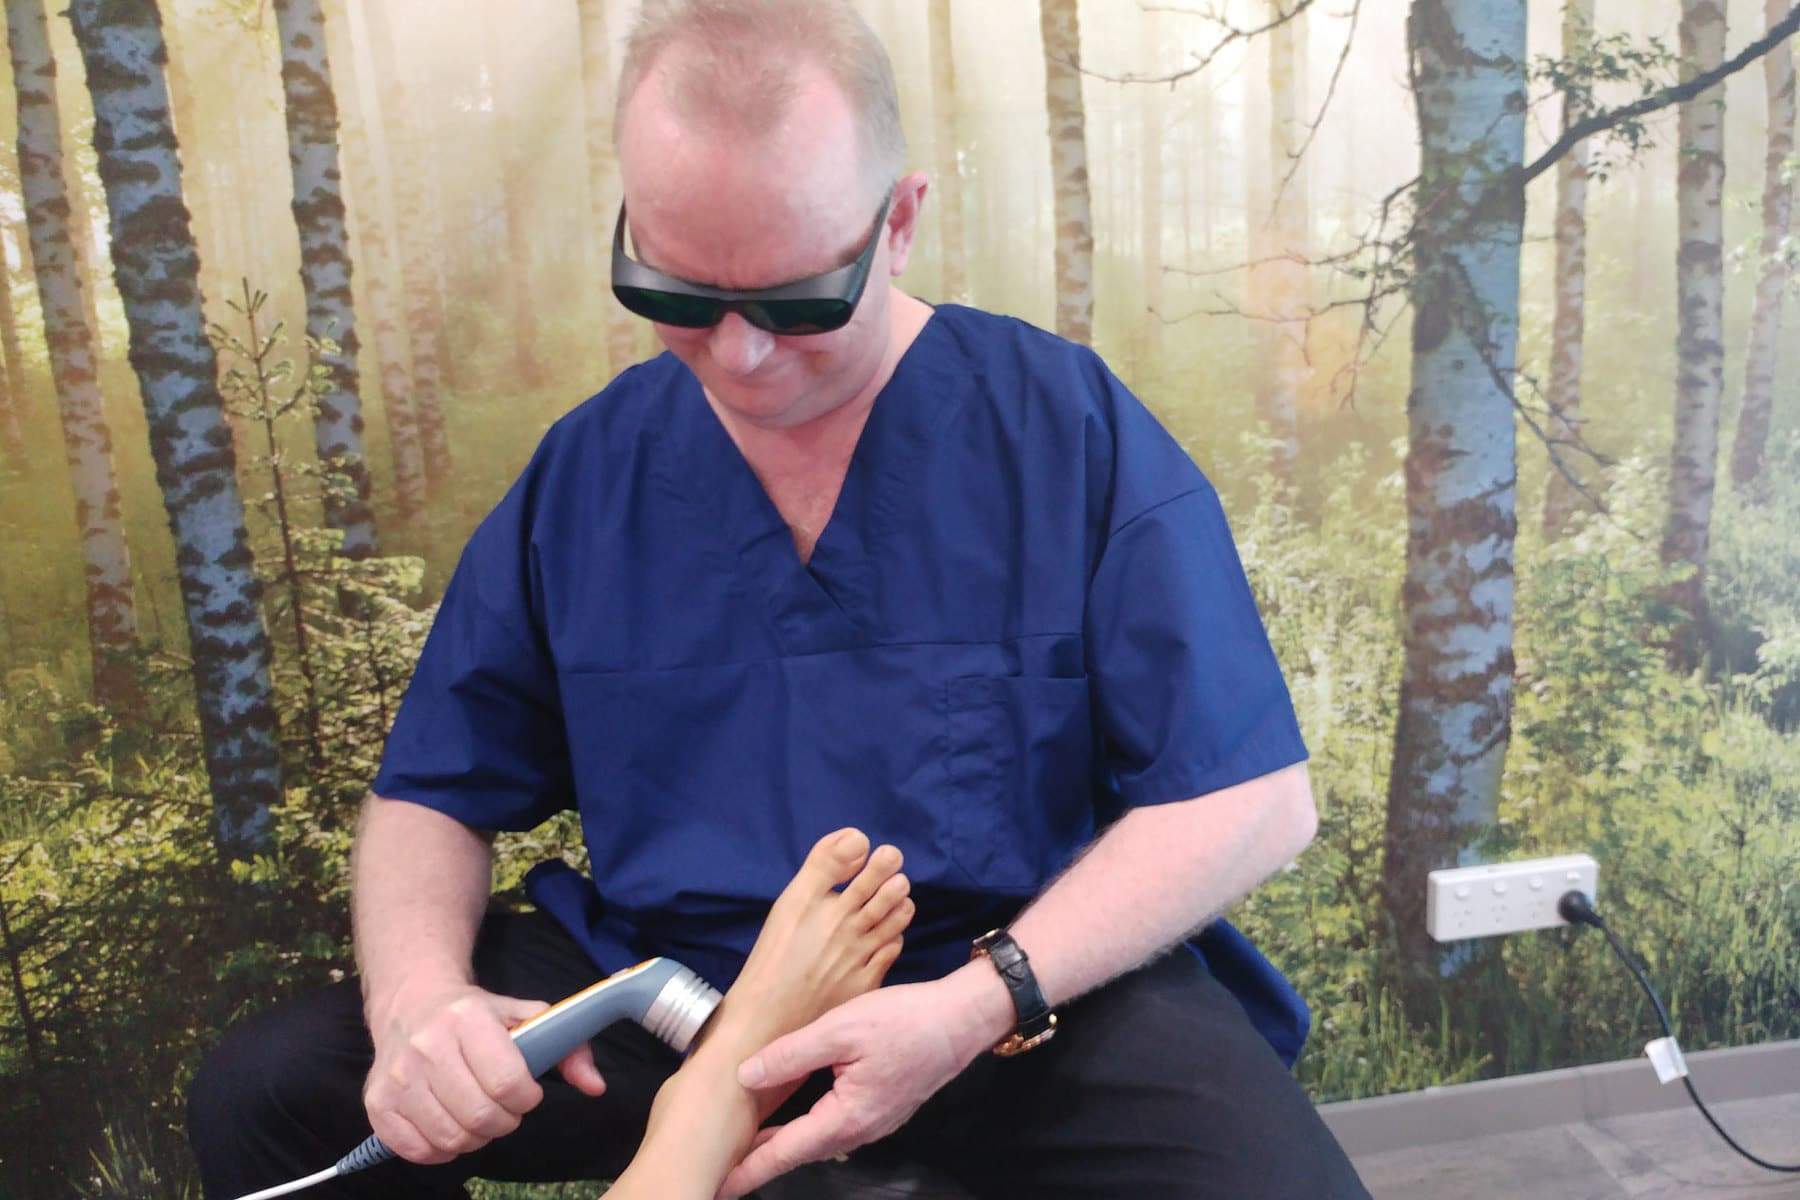 Low level laser therapy for foot pain